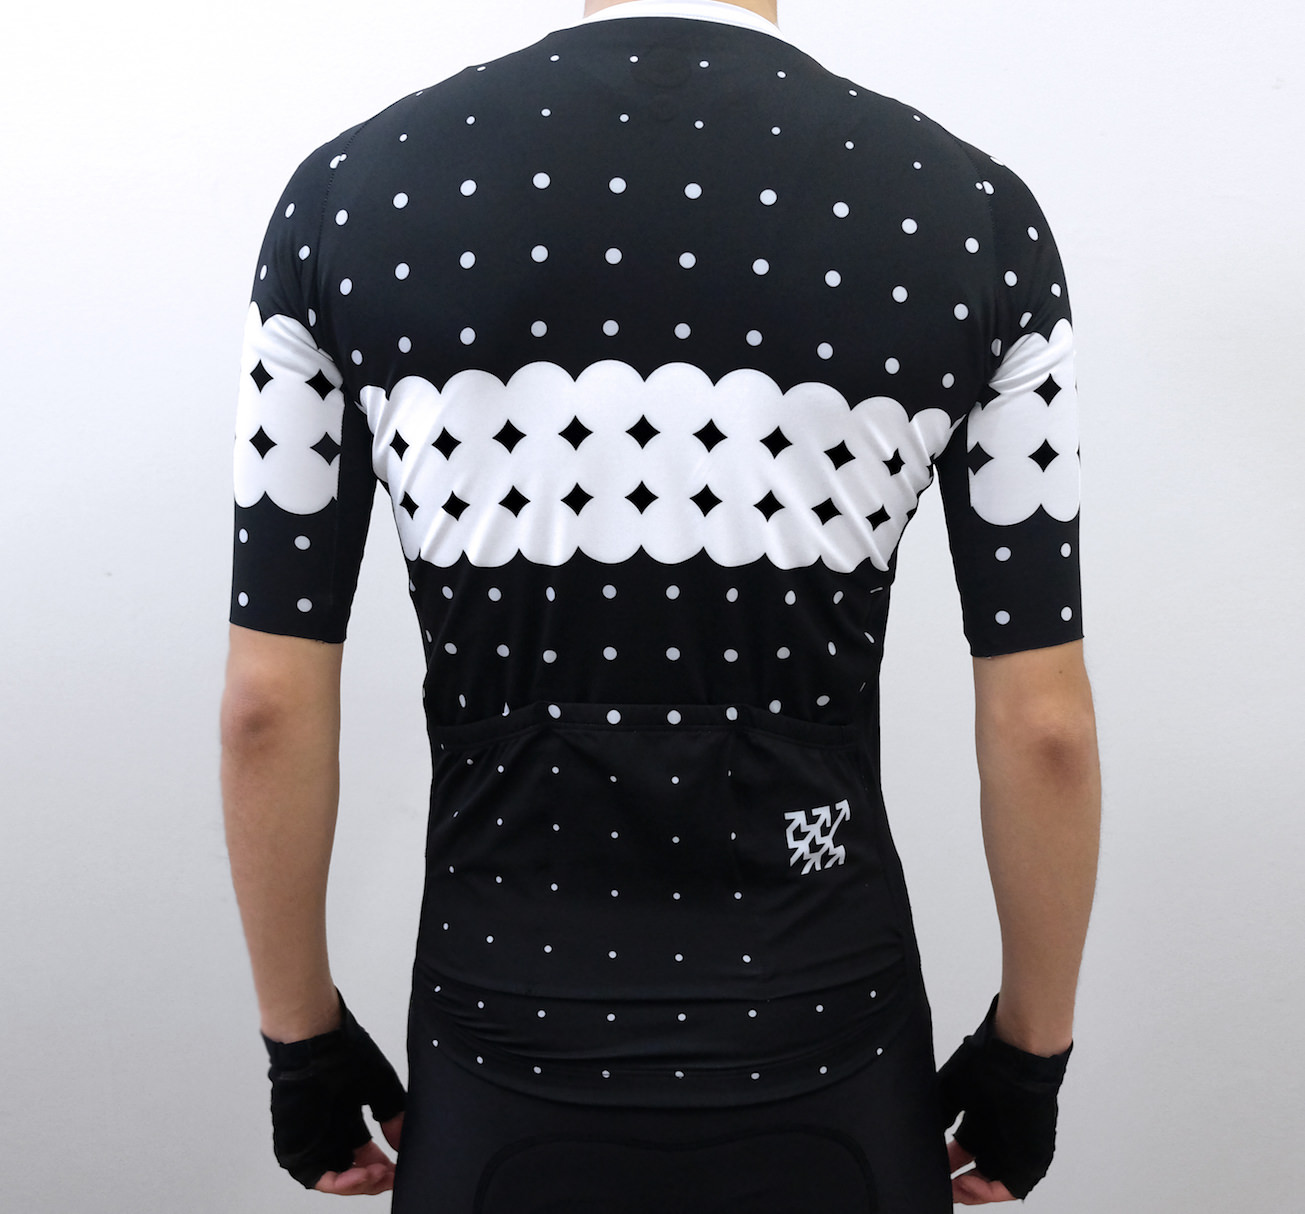 tic puncheur jersey - back